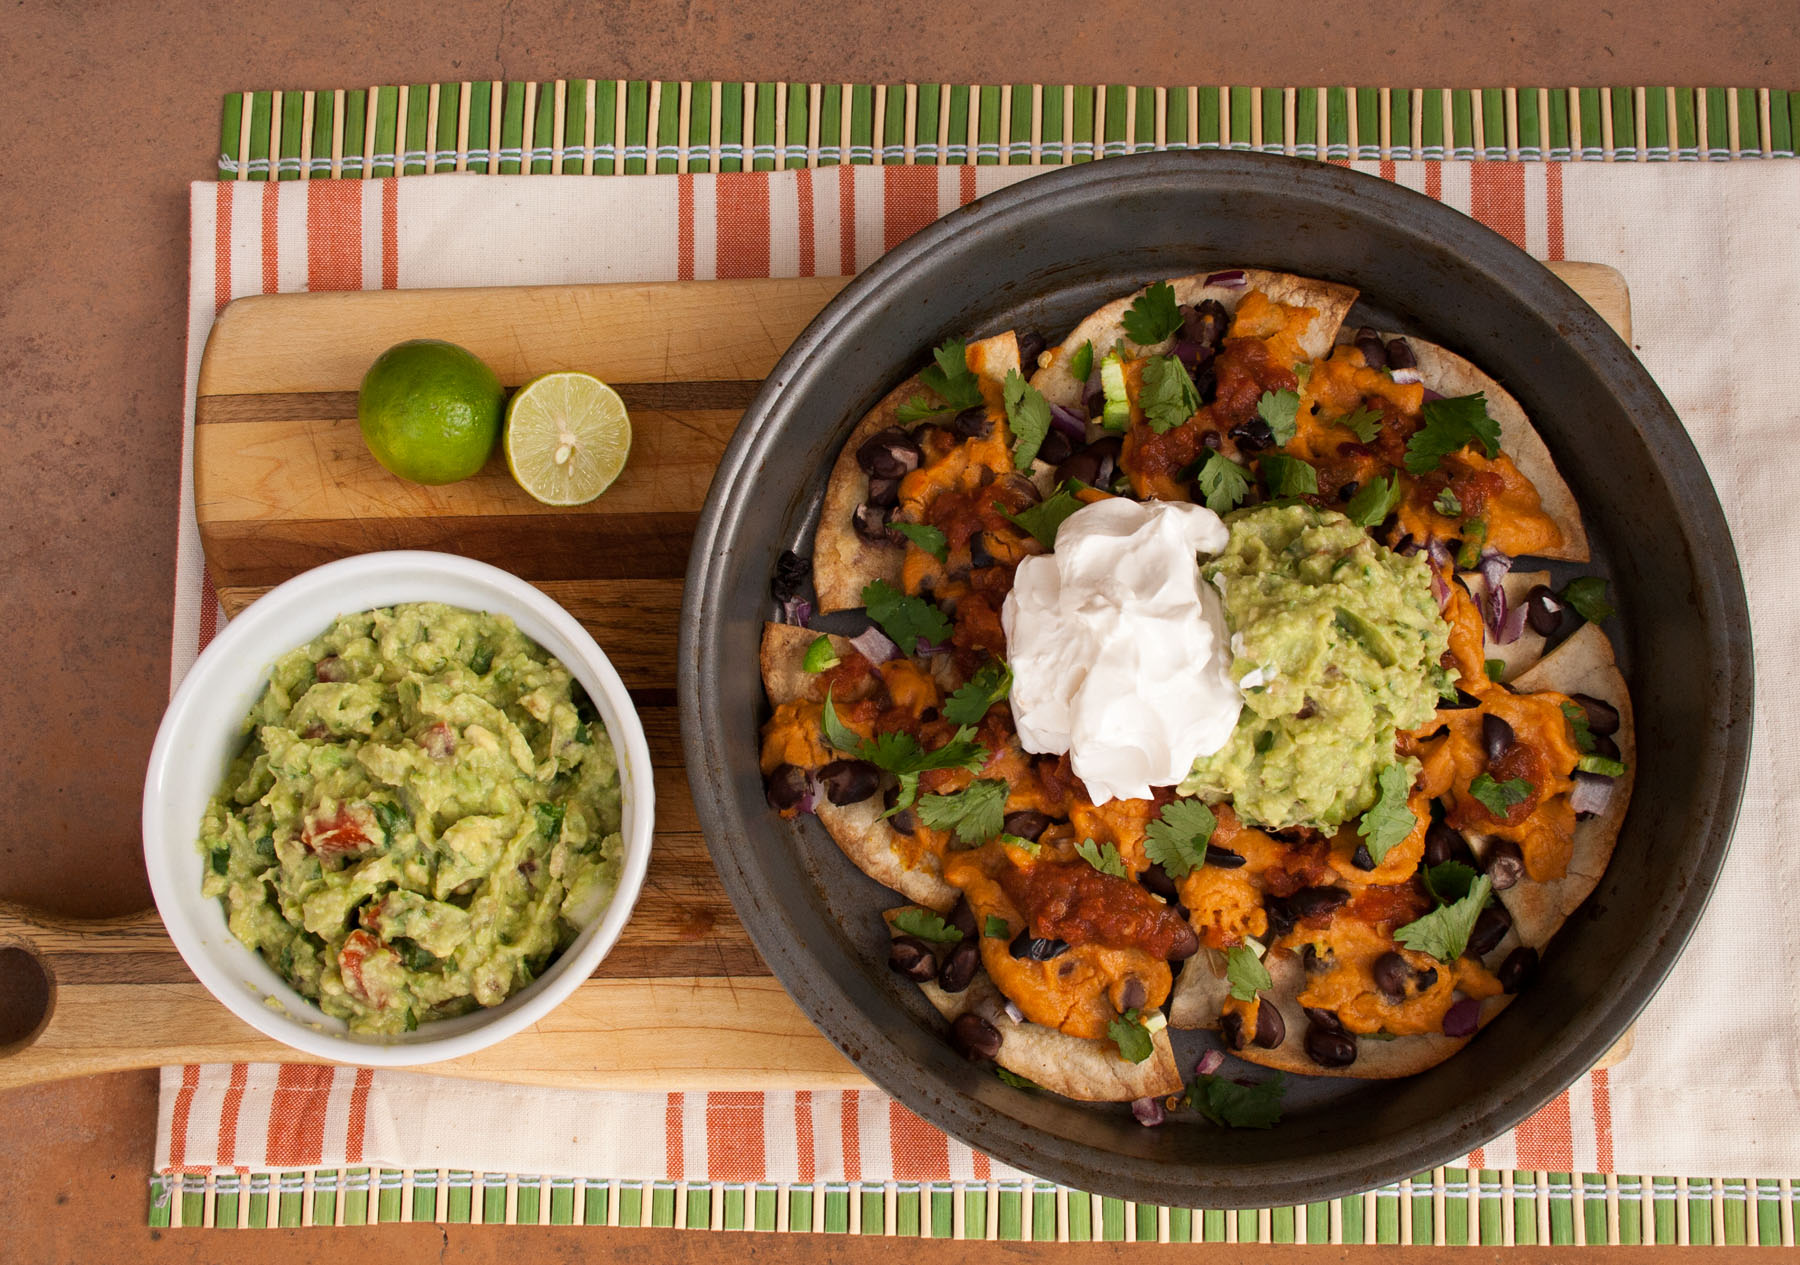 Loaded Vegan Nachos birds eye view.